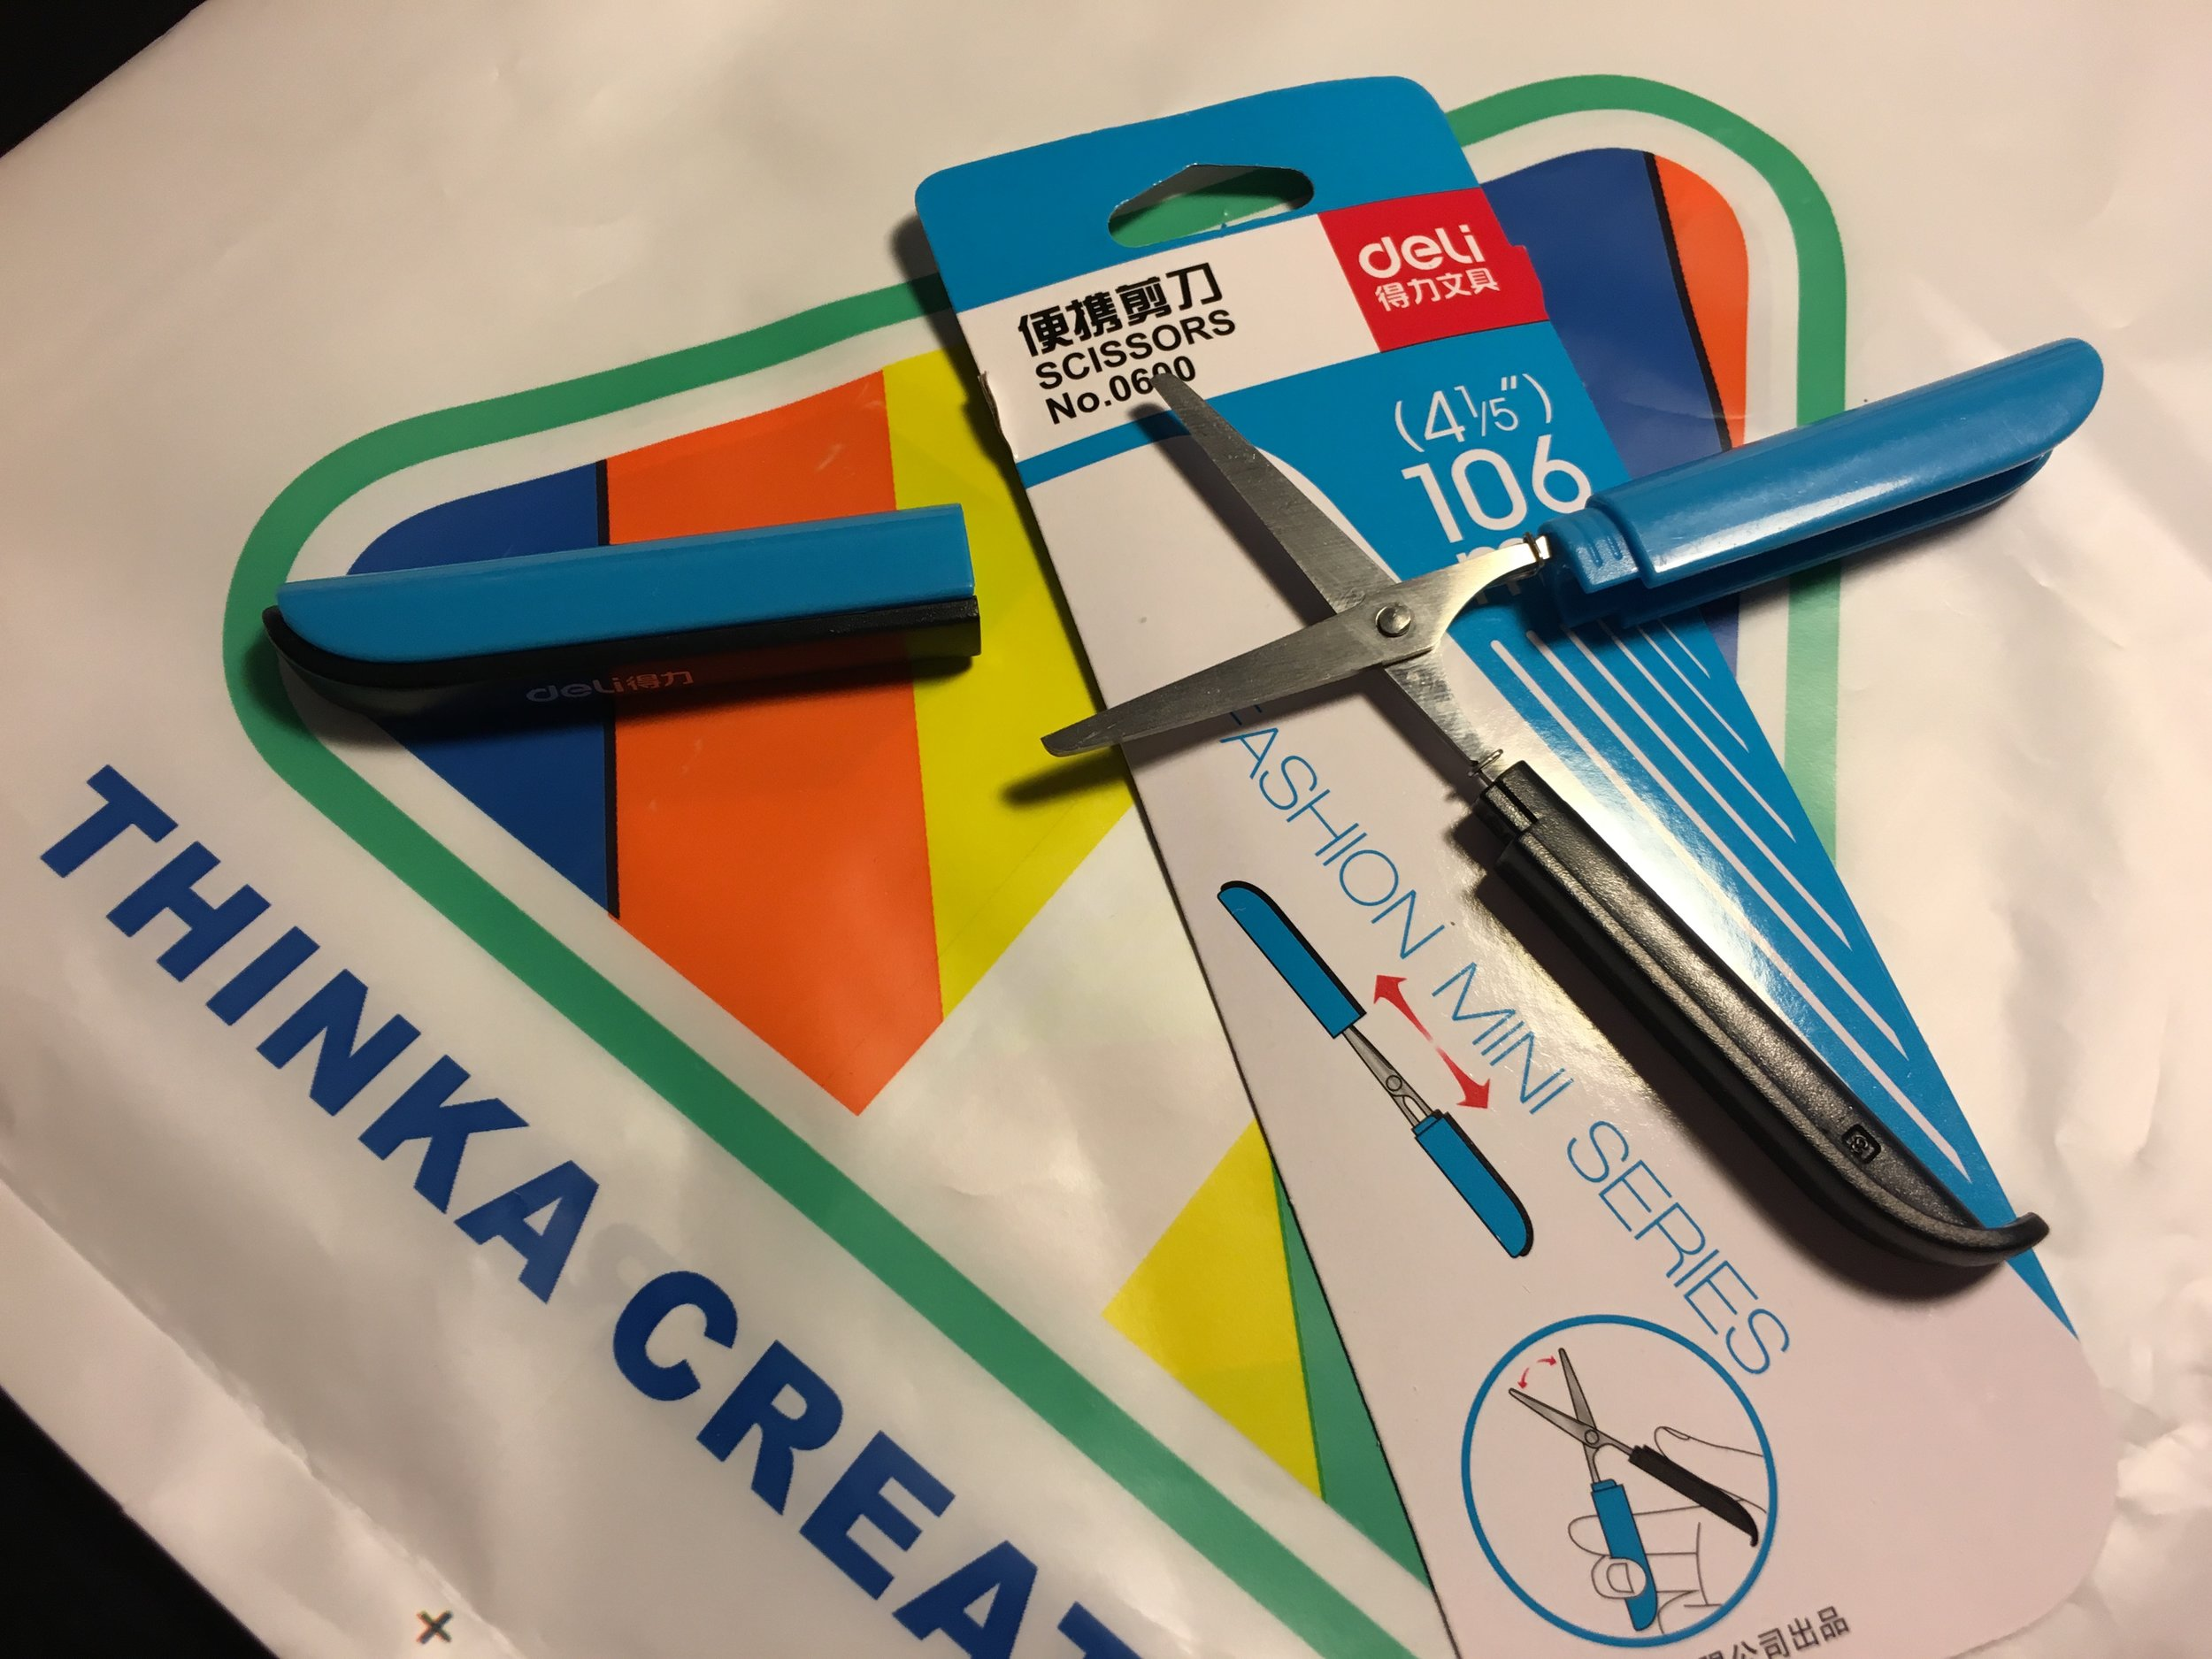 Deli folding scissors from Thinka Creative